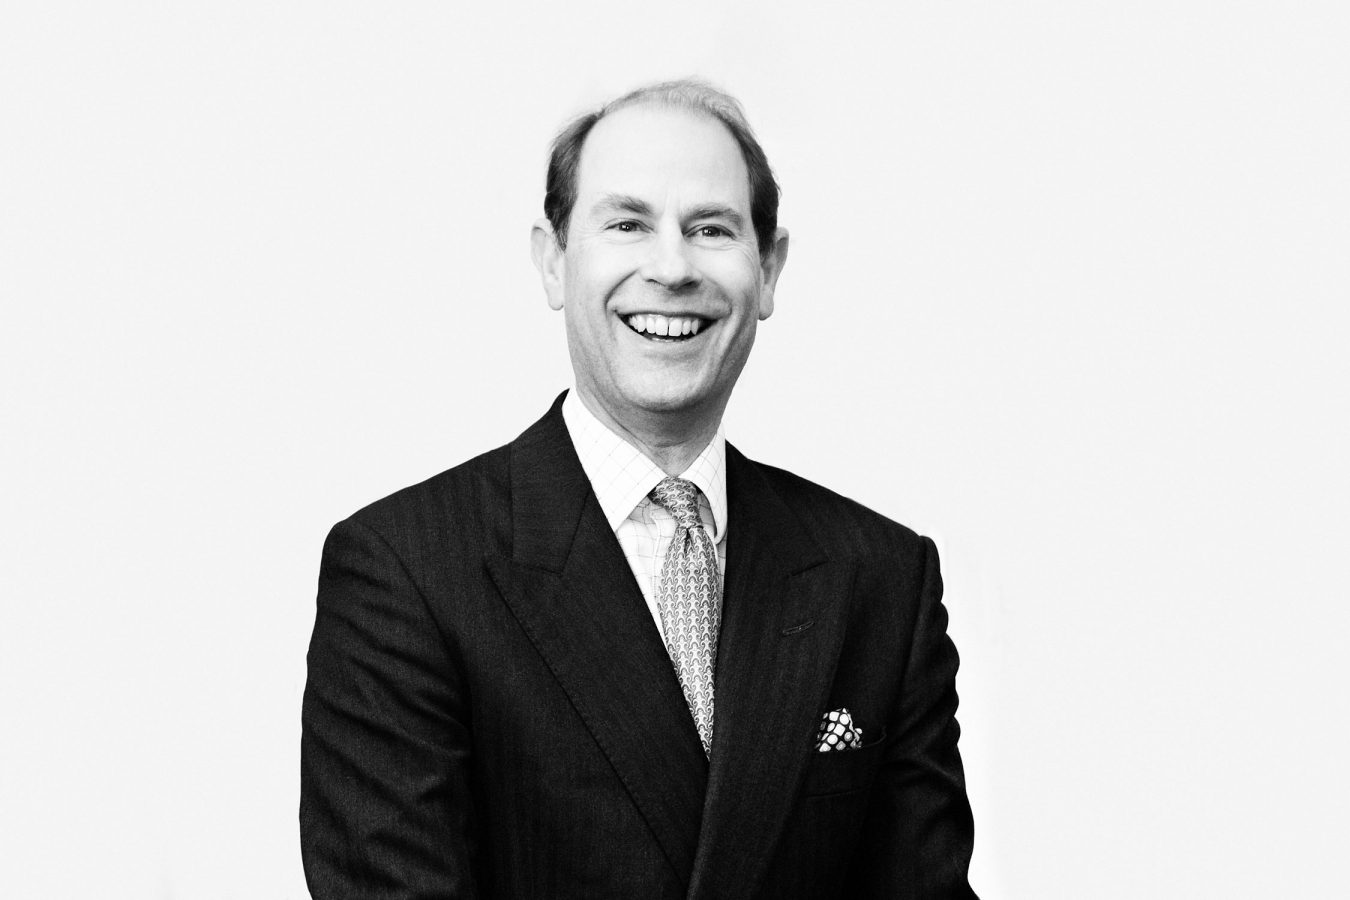 prince-edward-earl-of-wessex-black-and-white